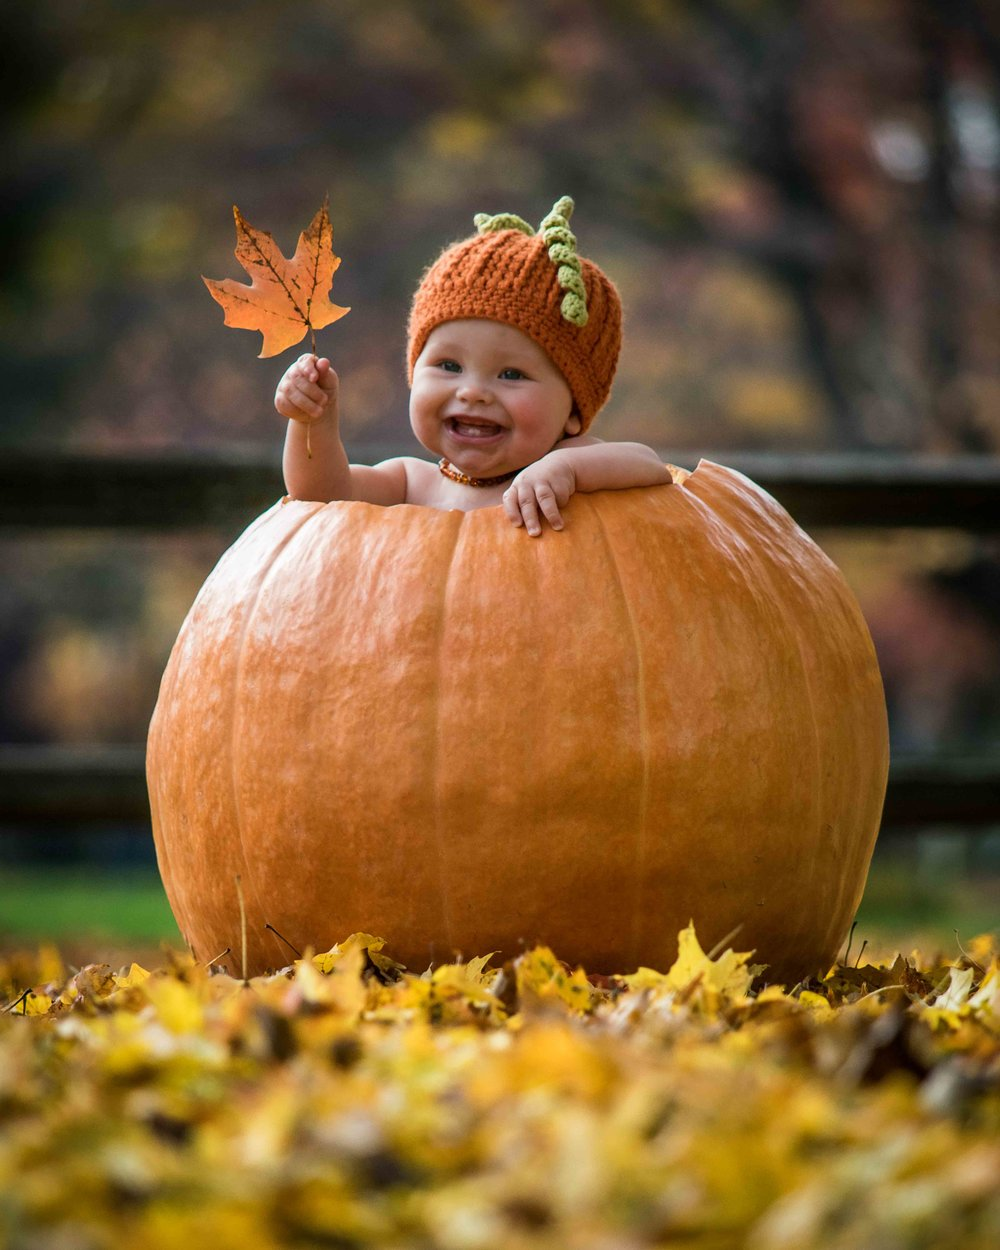 CDP Baby in a pumpkin for Halloween.jpg